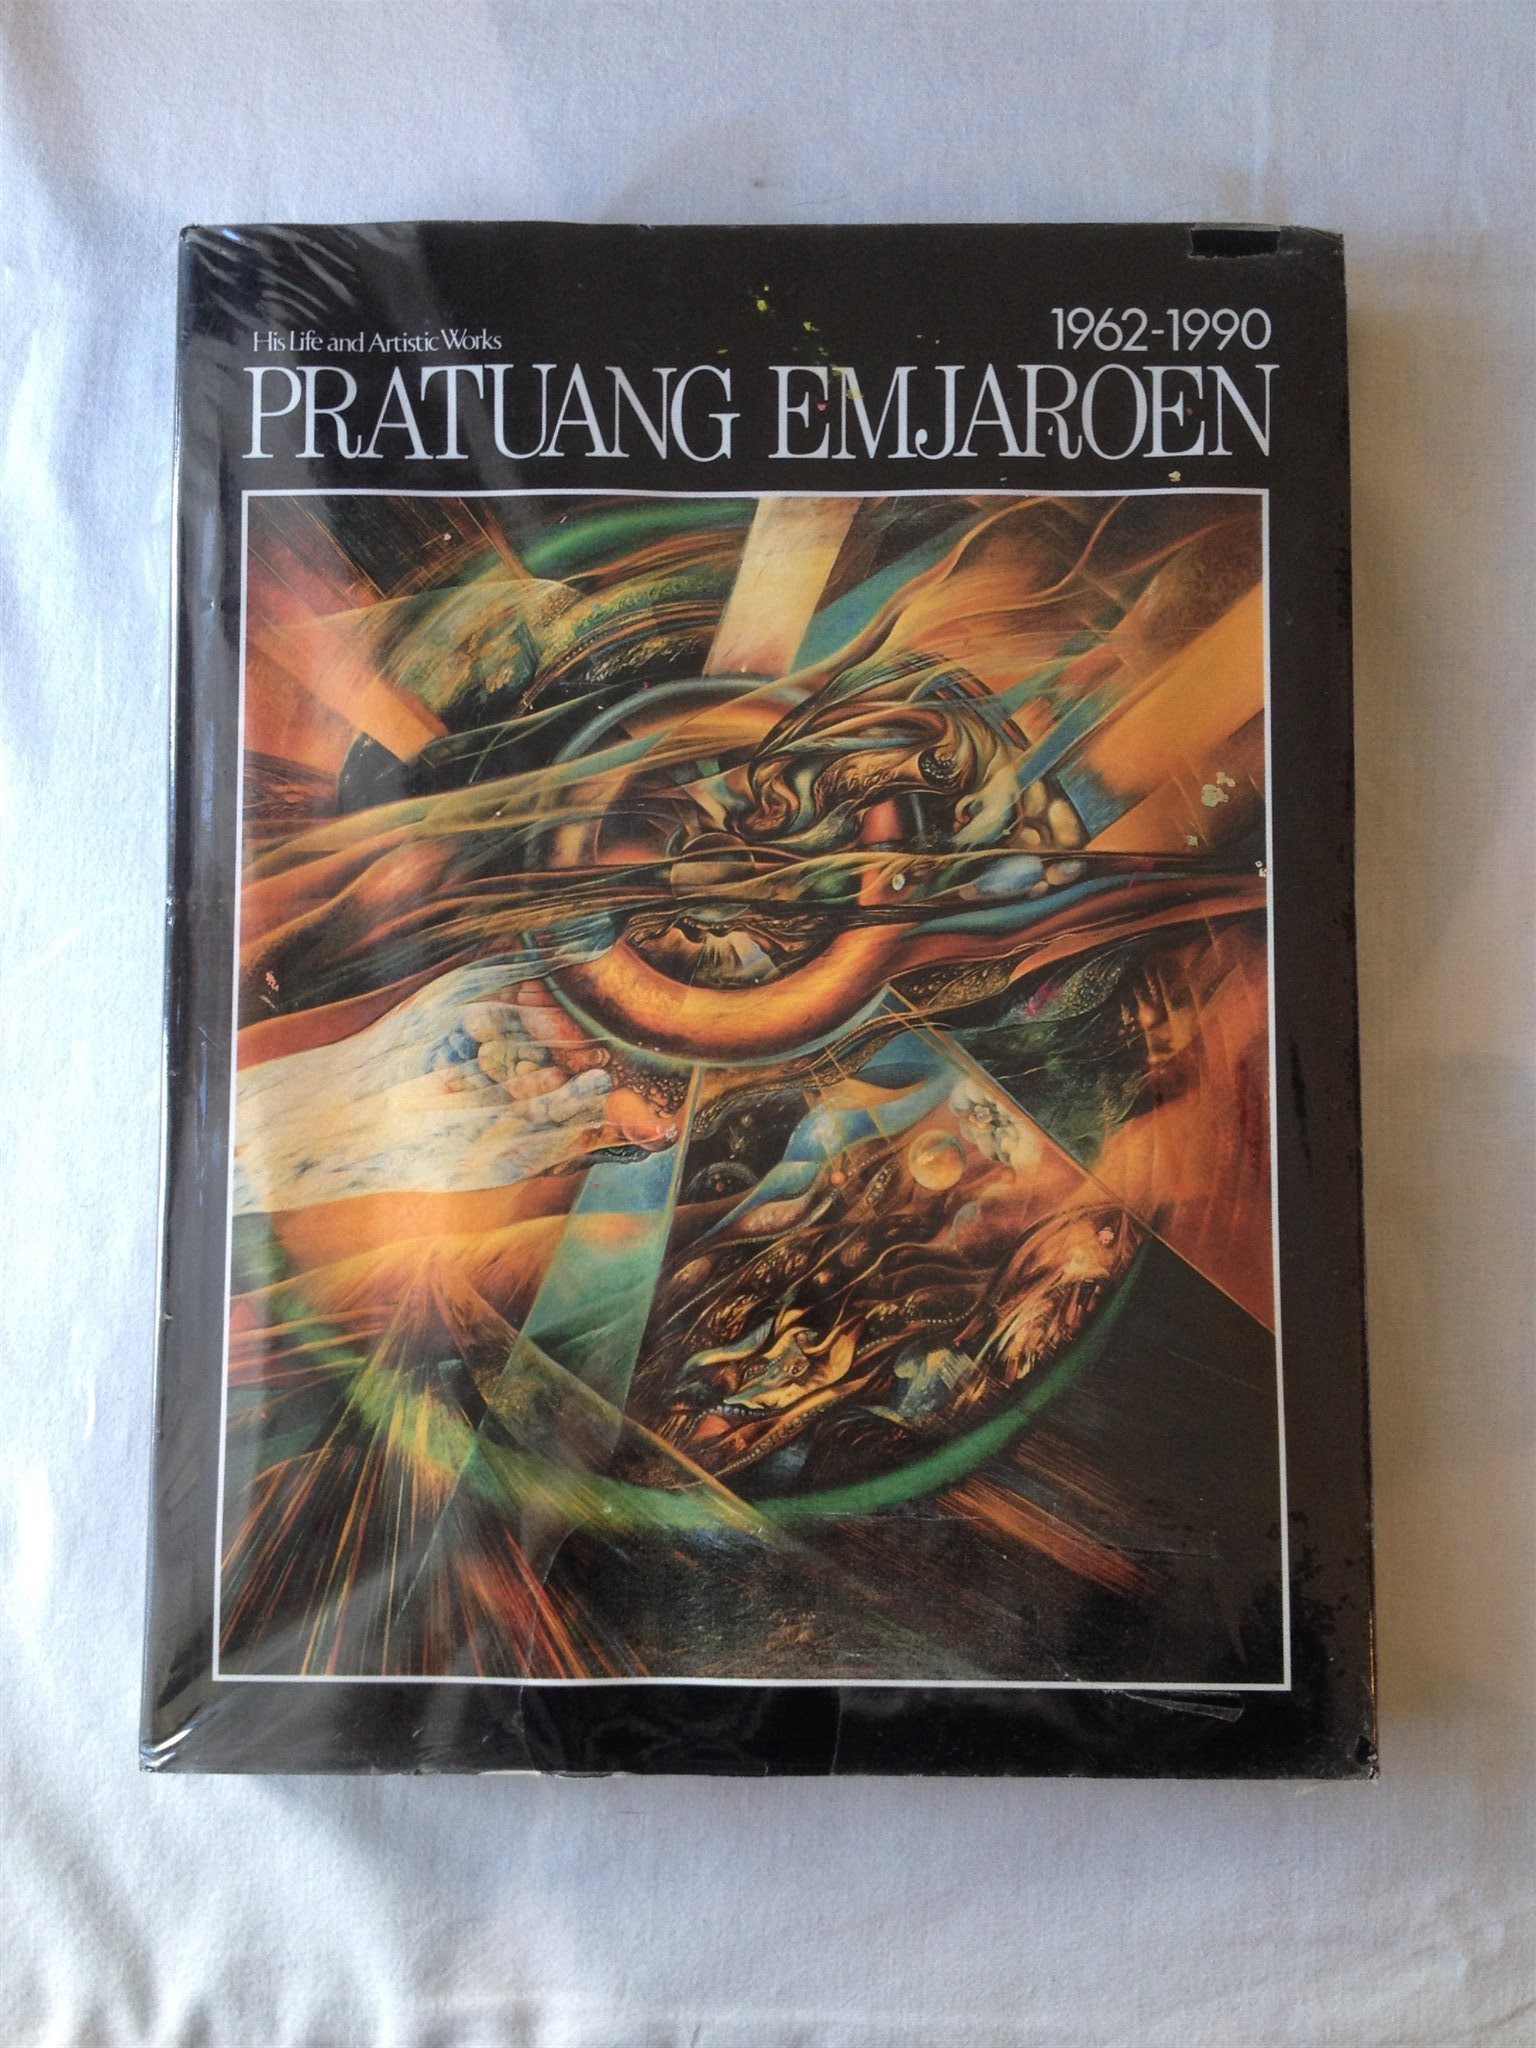 PRATUANG EMJAROEN His Life and Artistic Works 1962-1990